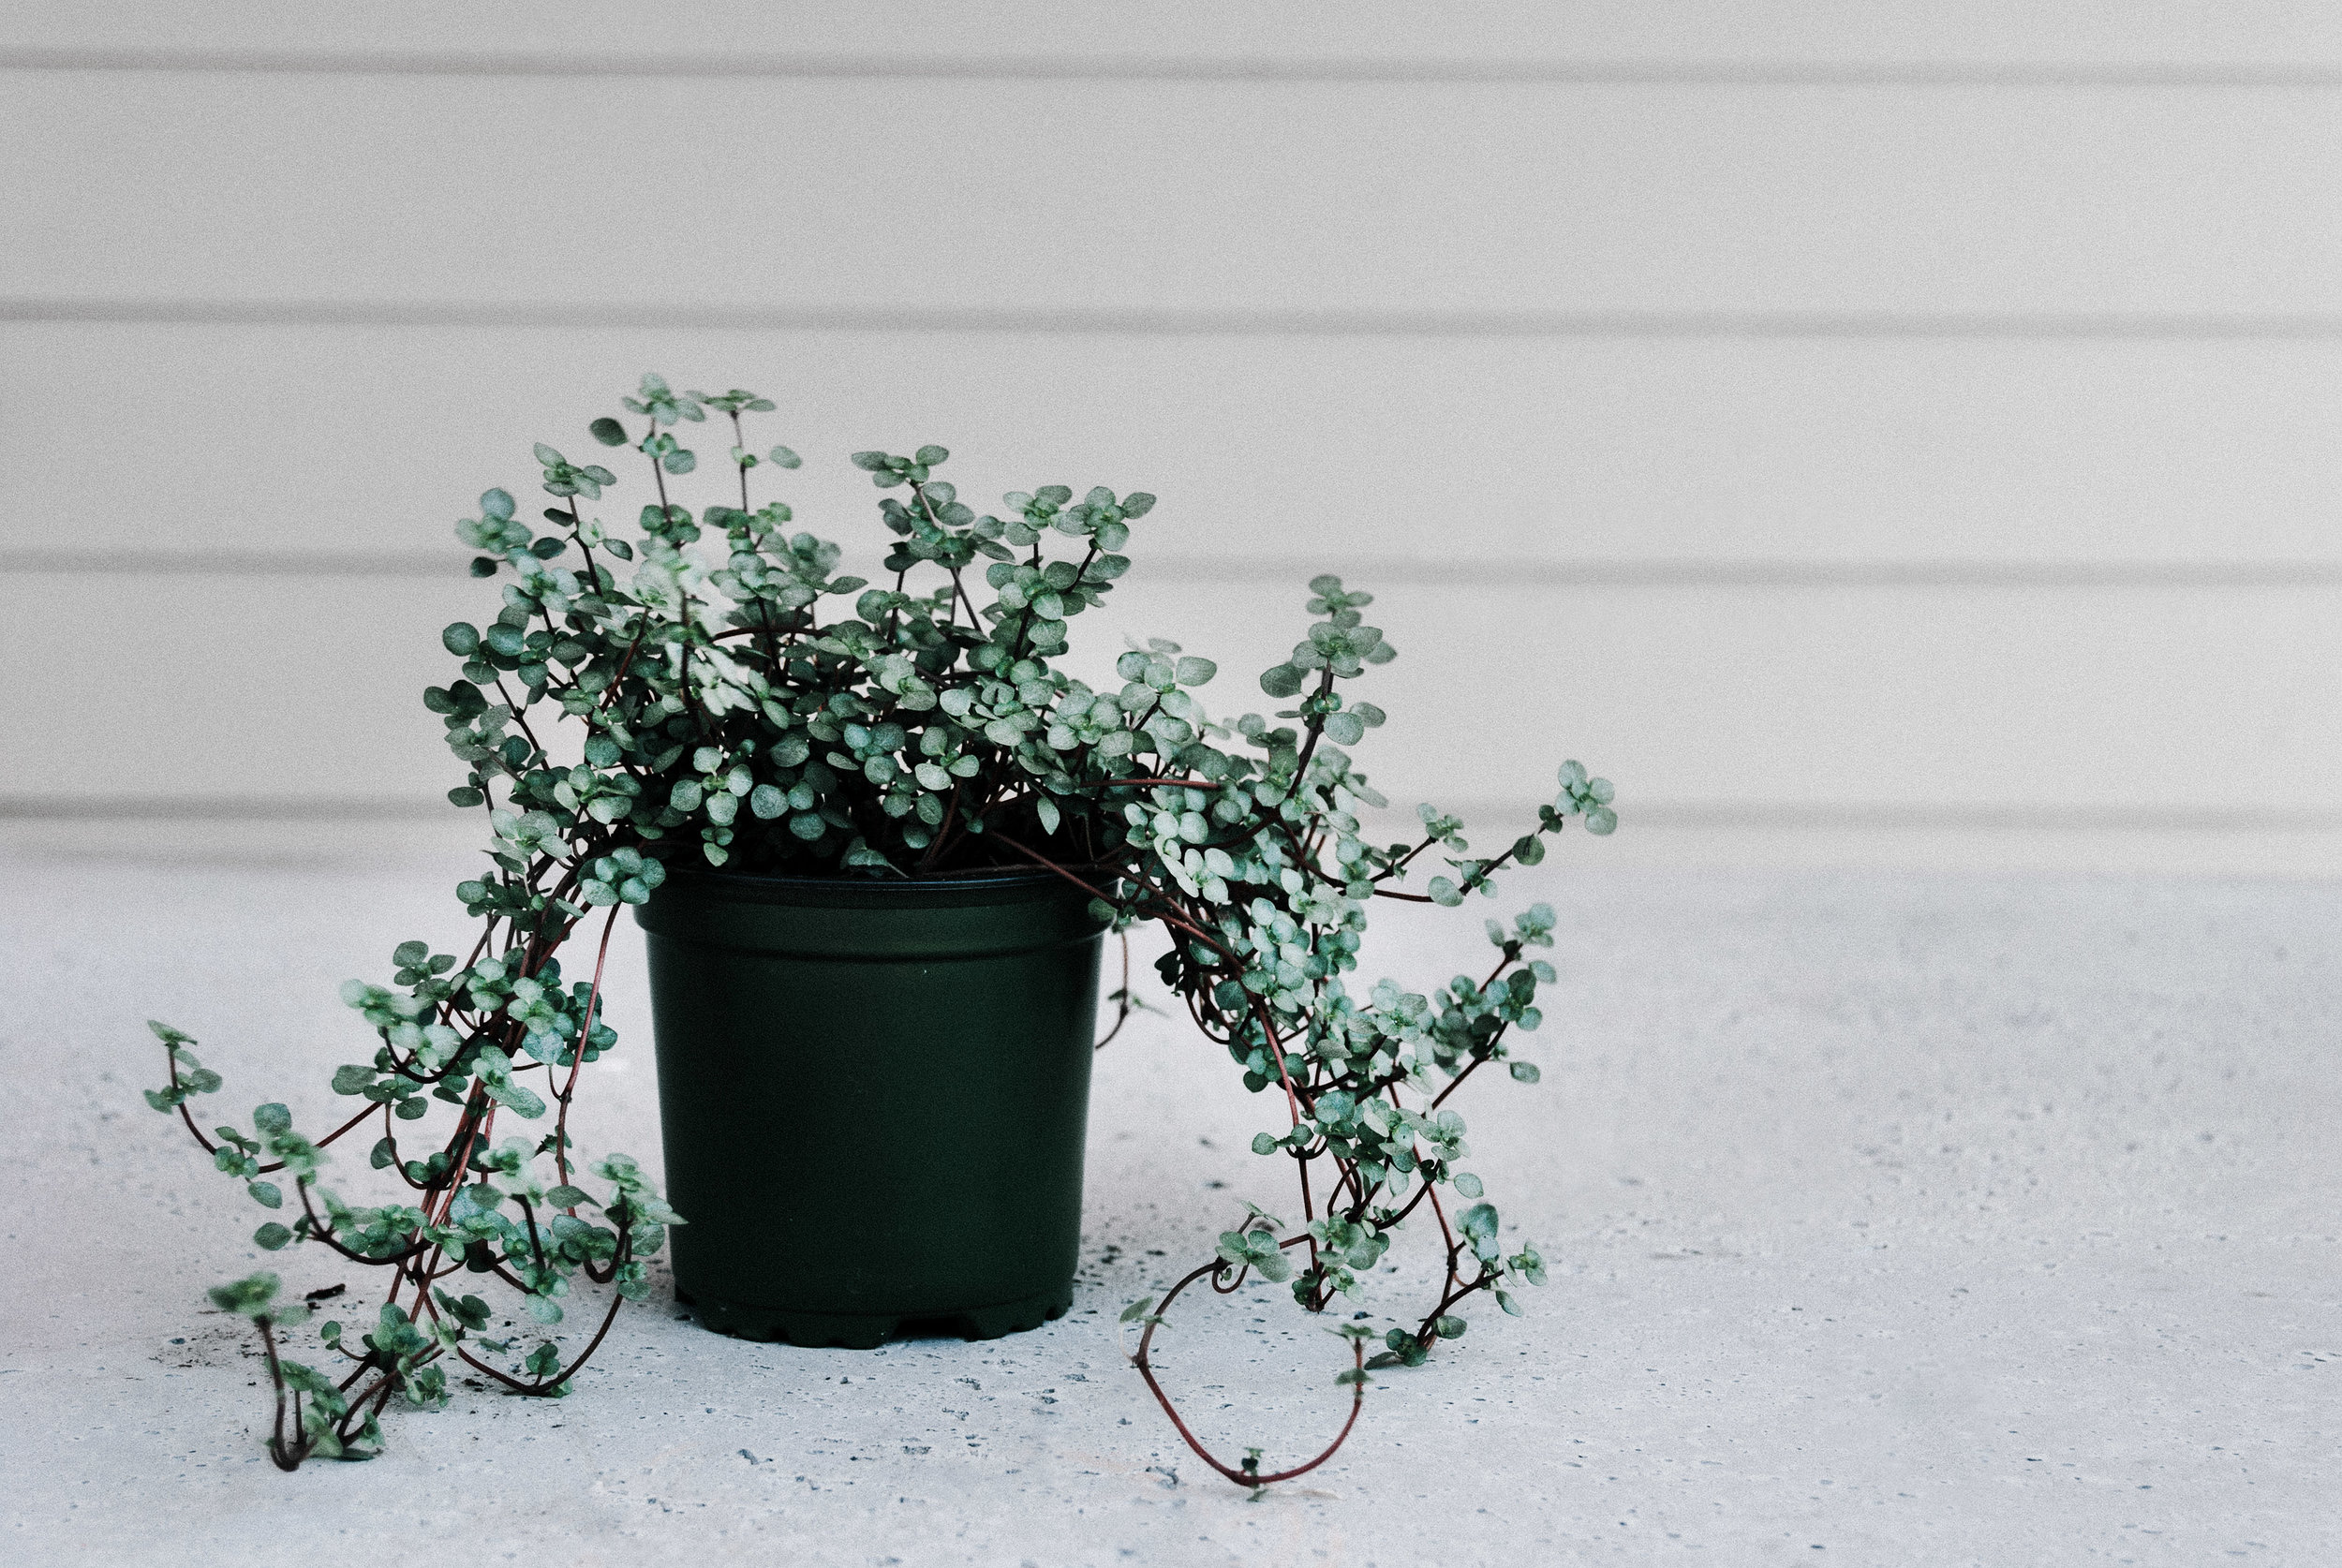 Silver sparkle pilea - houseplant care guide by Dusty Hegge